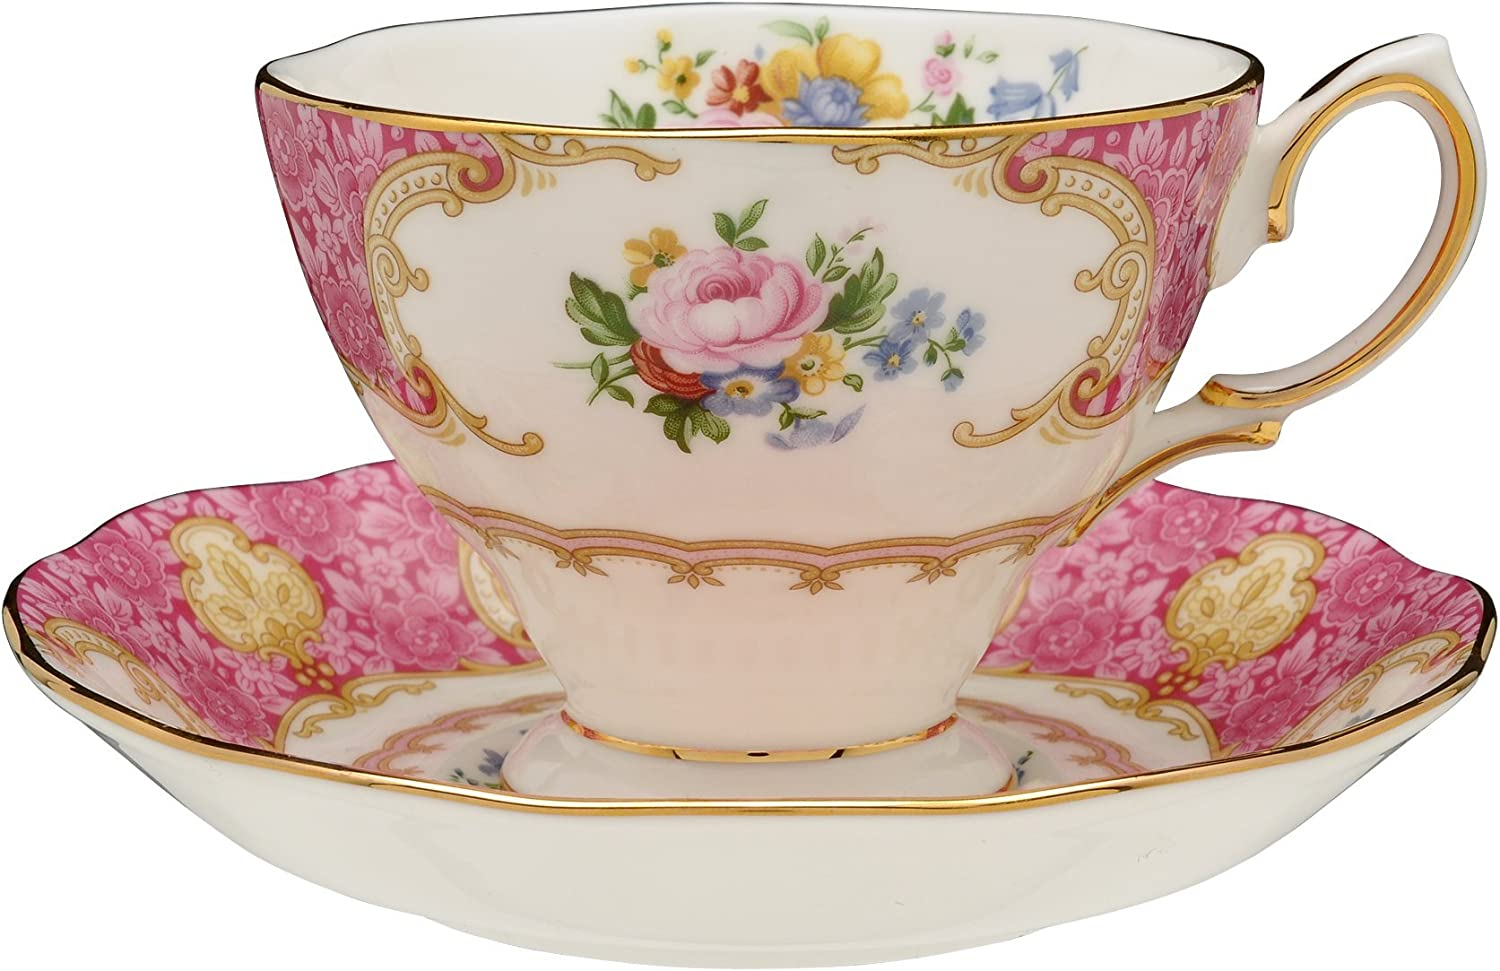 Royal Albert Lady Carlyle Teacup cheap and saucer 6.8 Now on sale Saucer